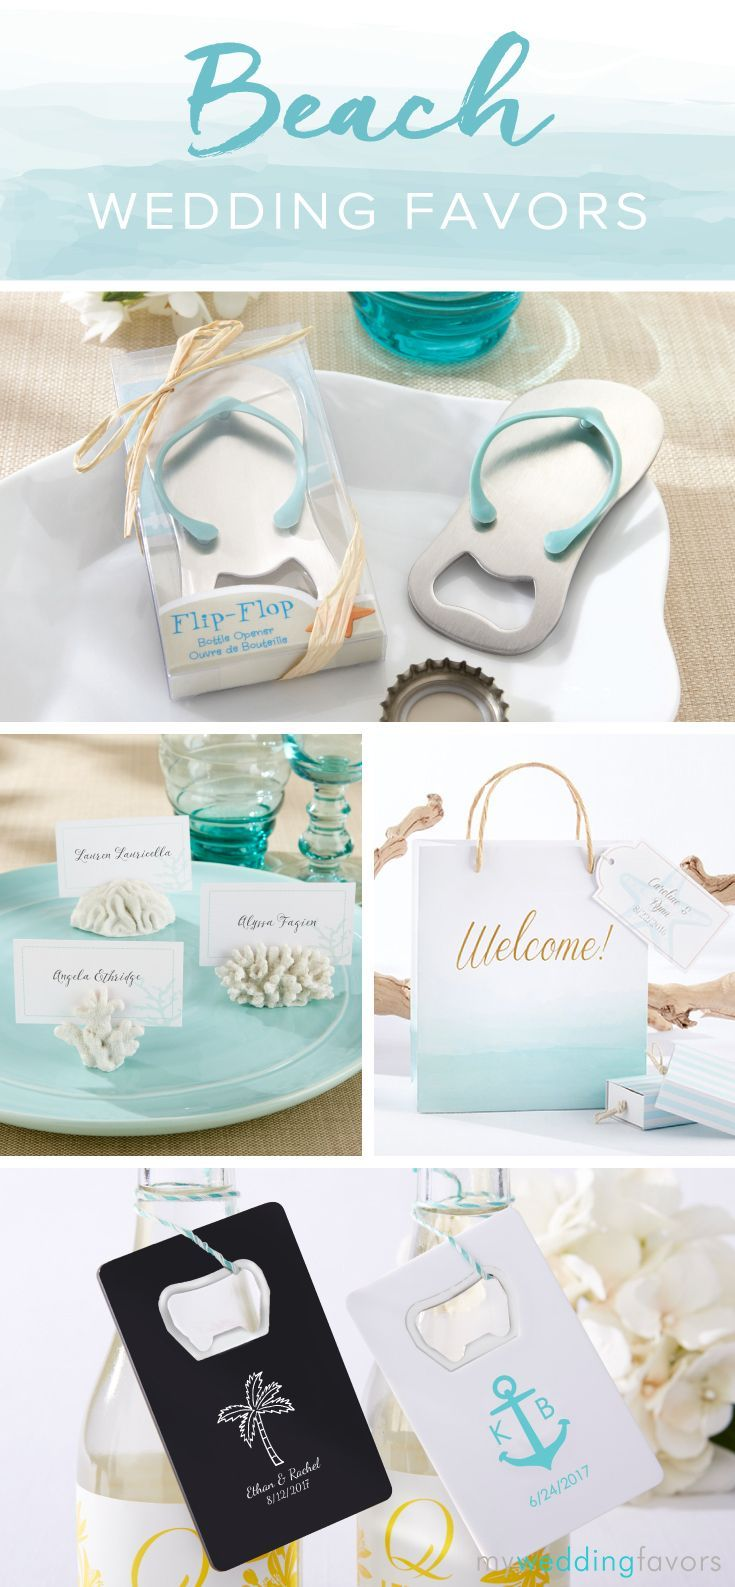 Your Guests Will Never Forget Your Special Day With These Great